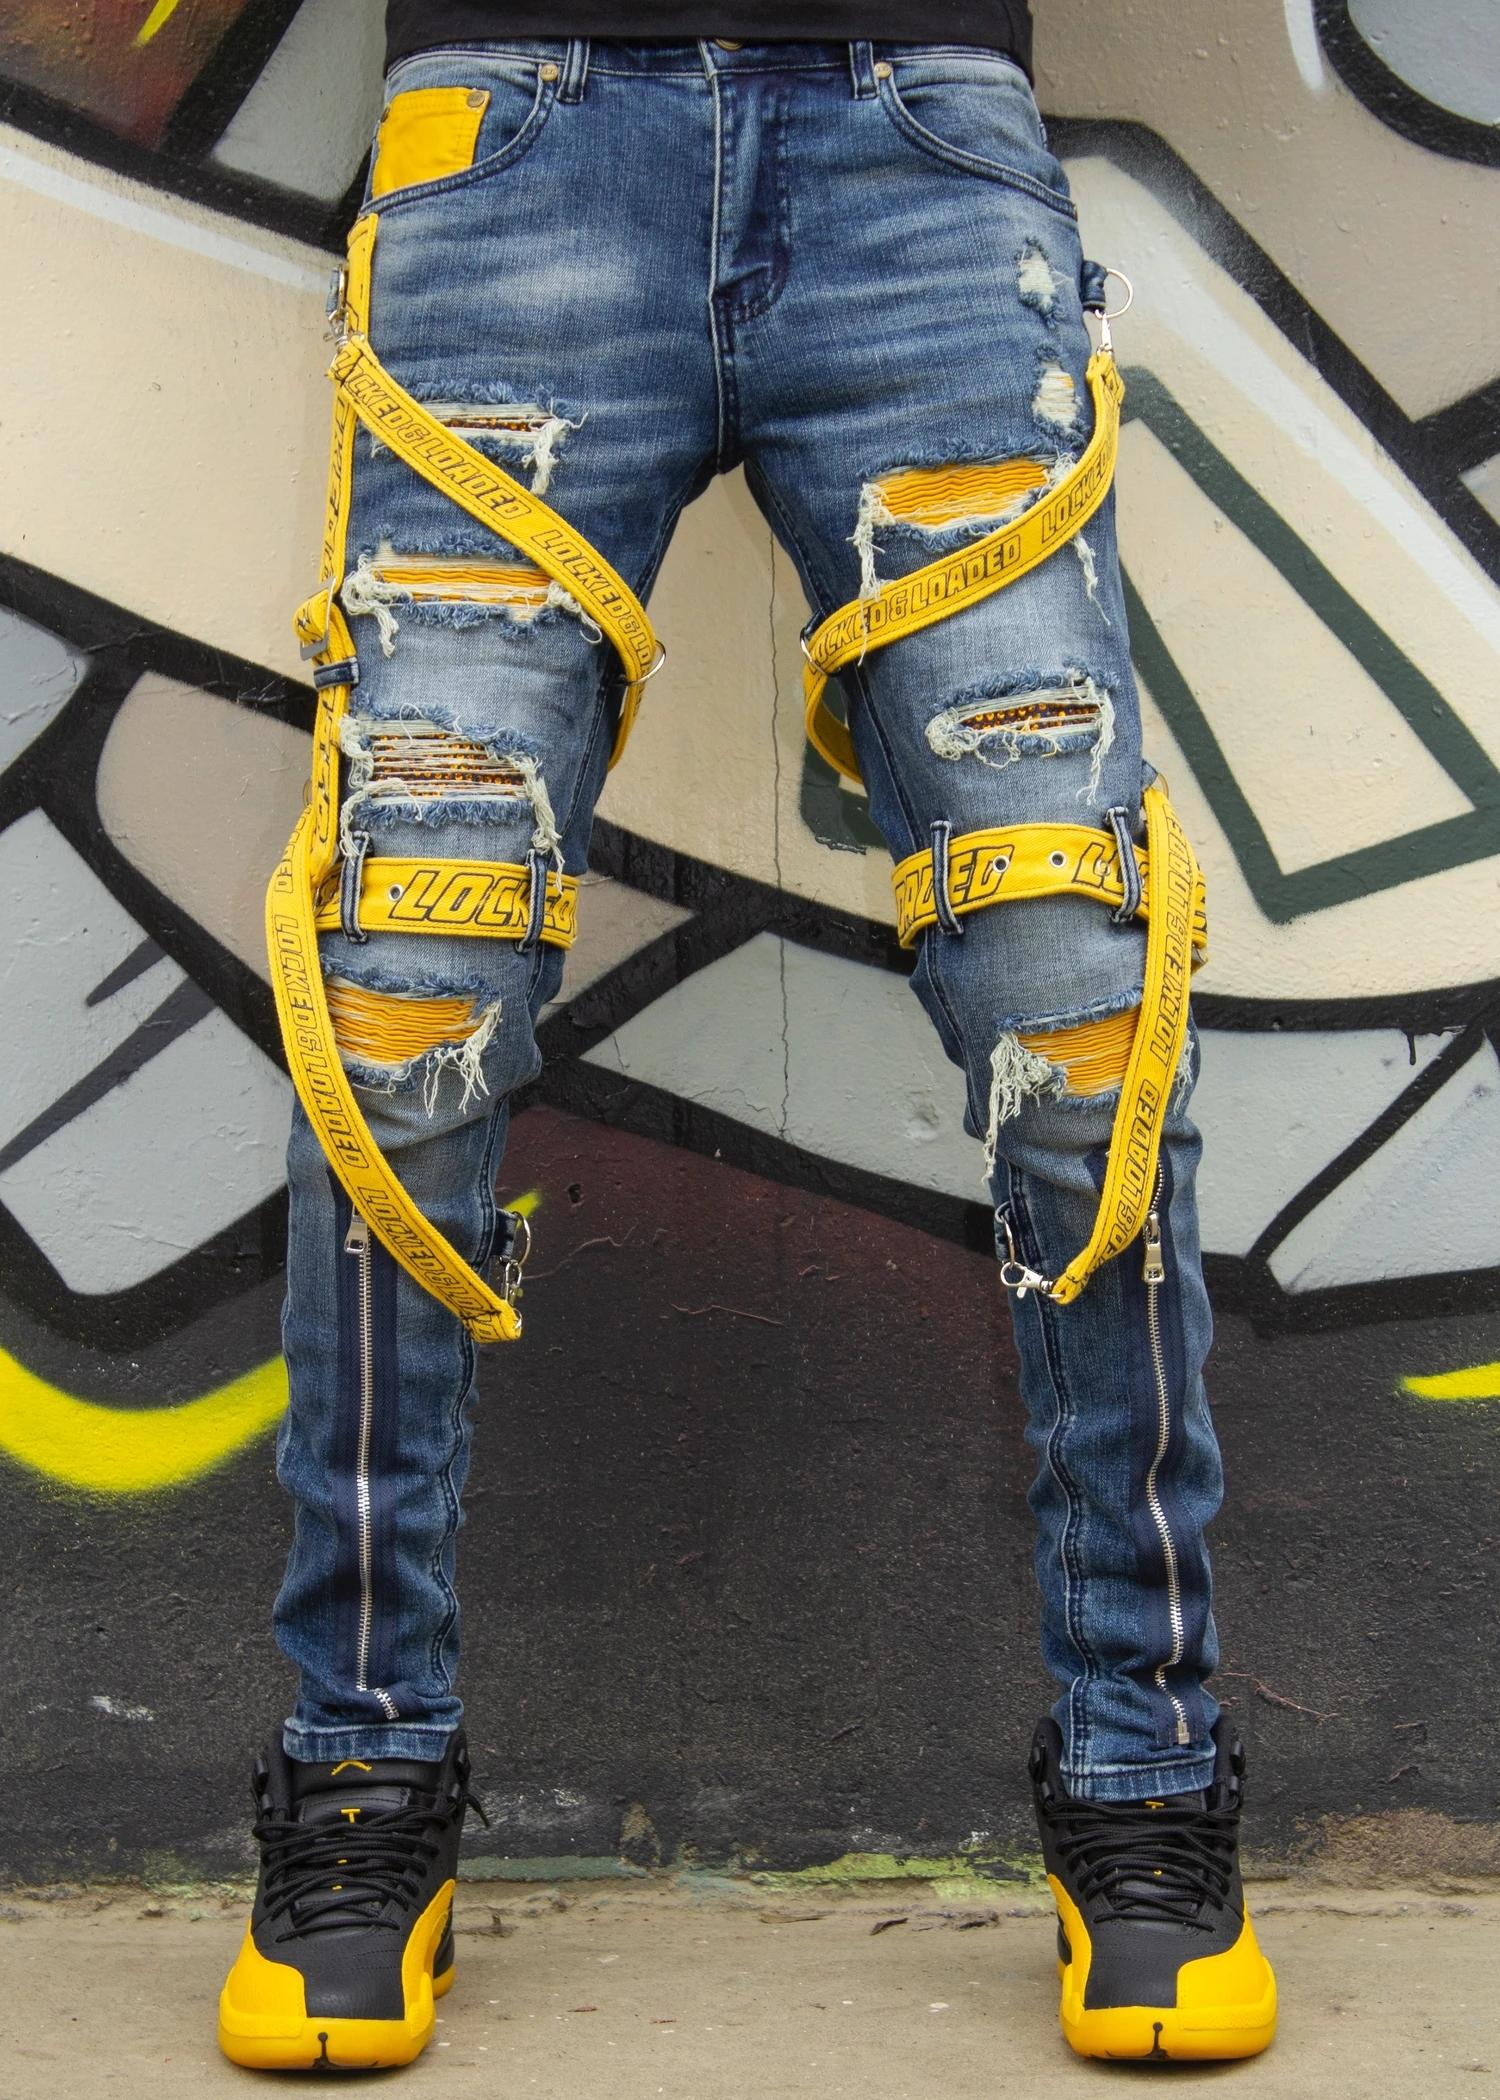 Locked and loaded jeans-belt and stone-blue and yellow-